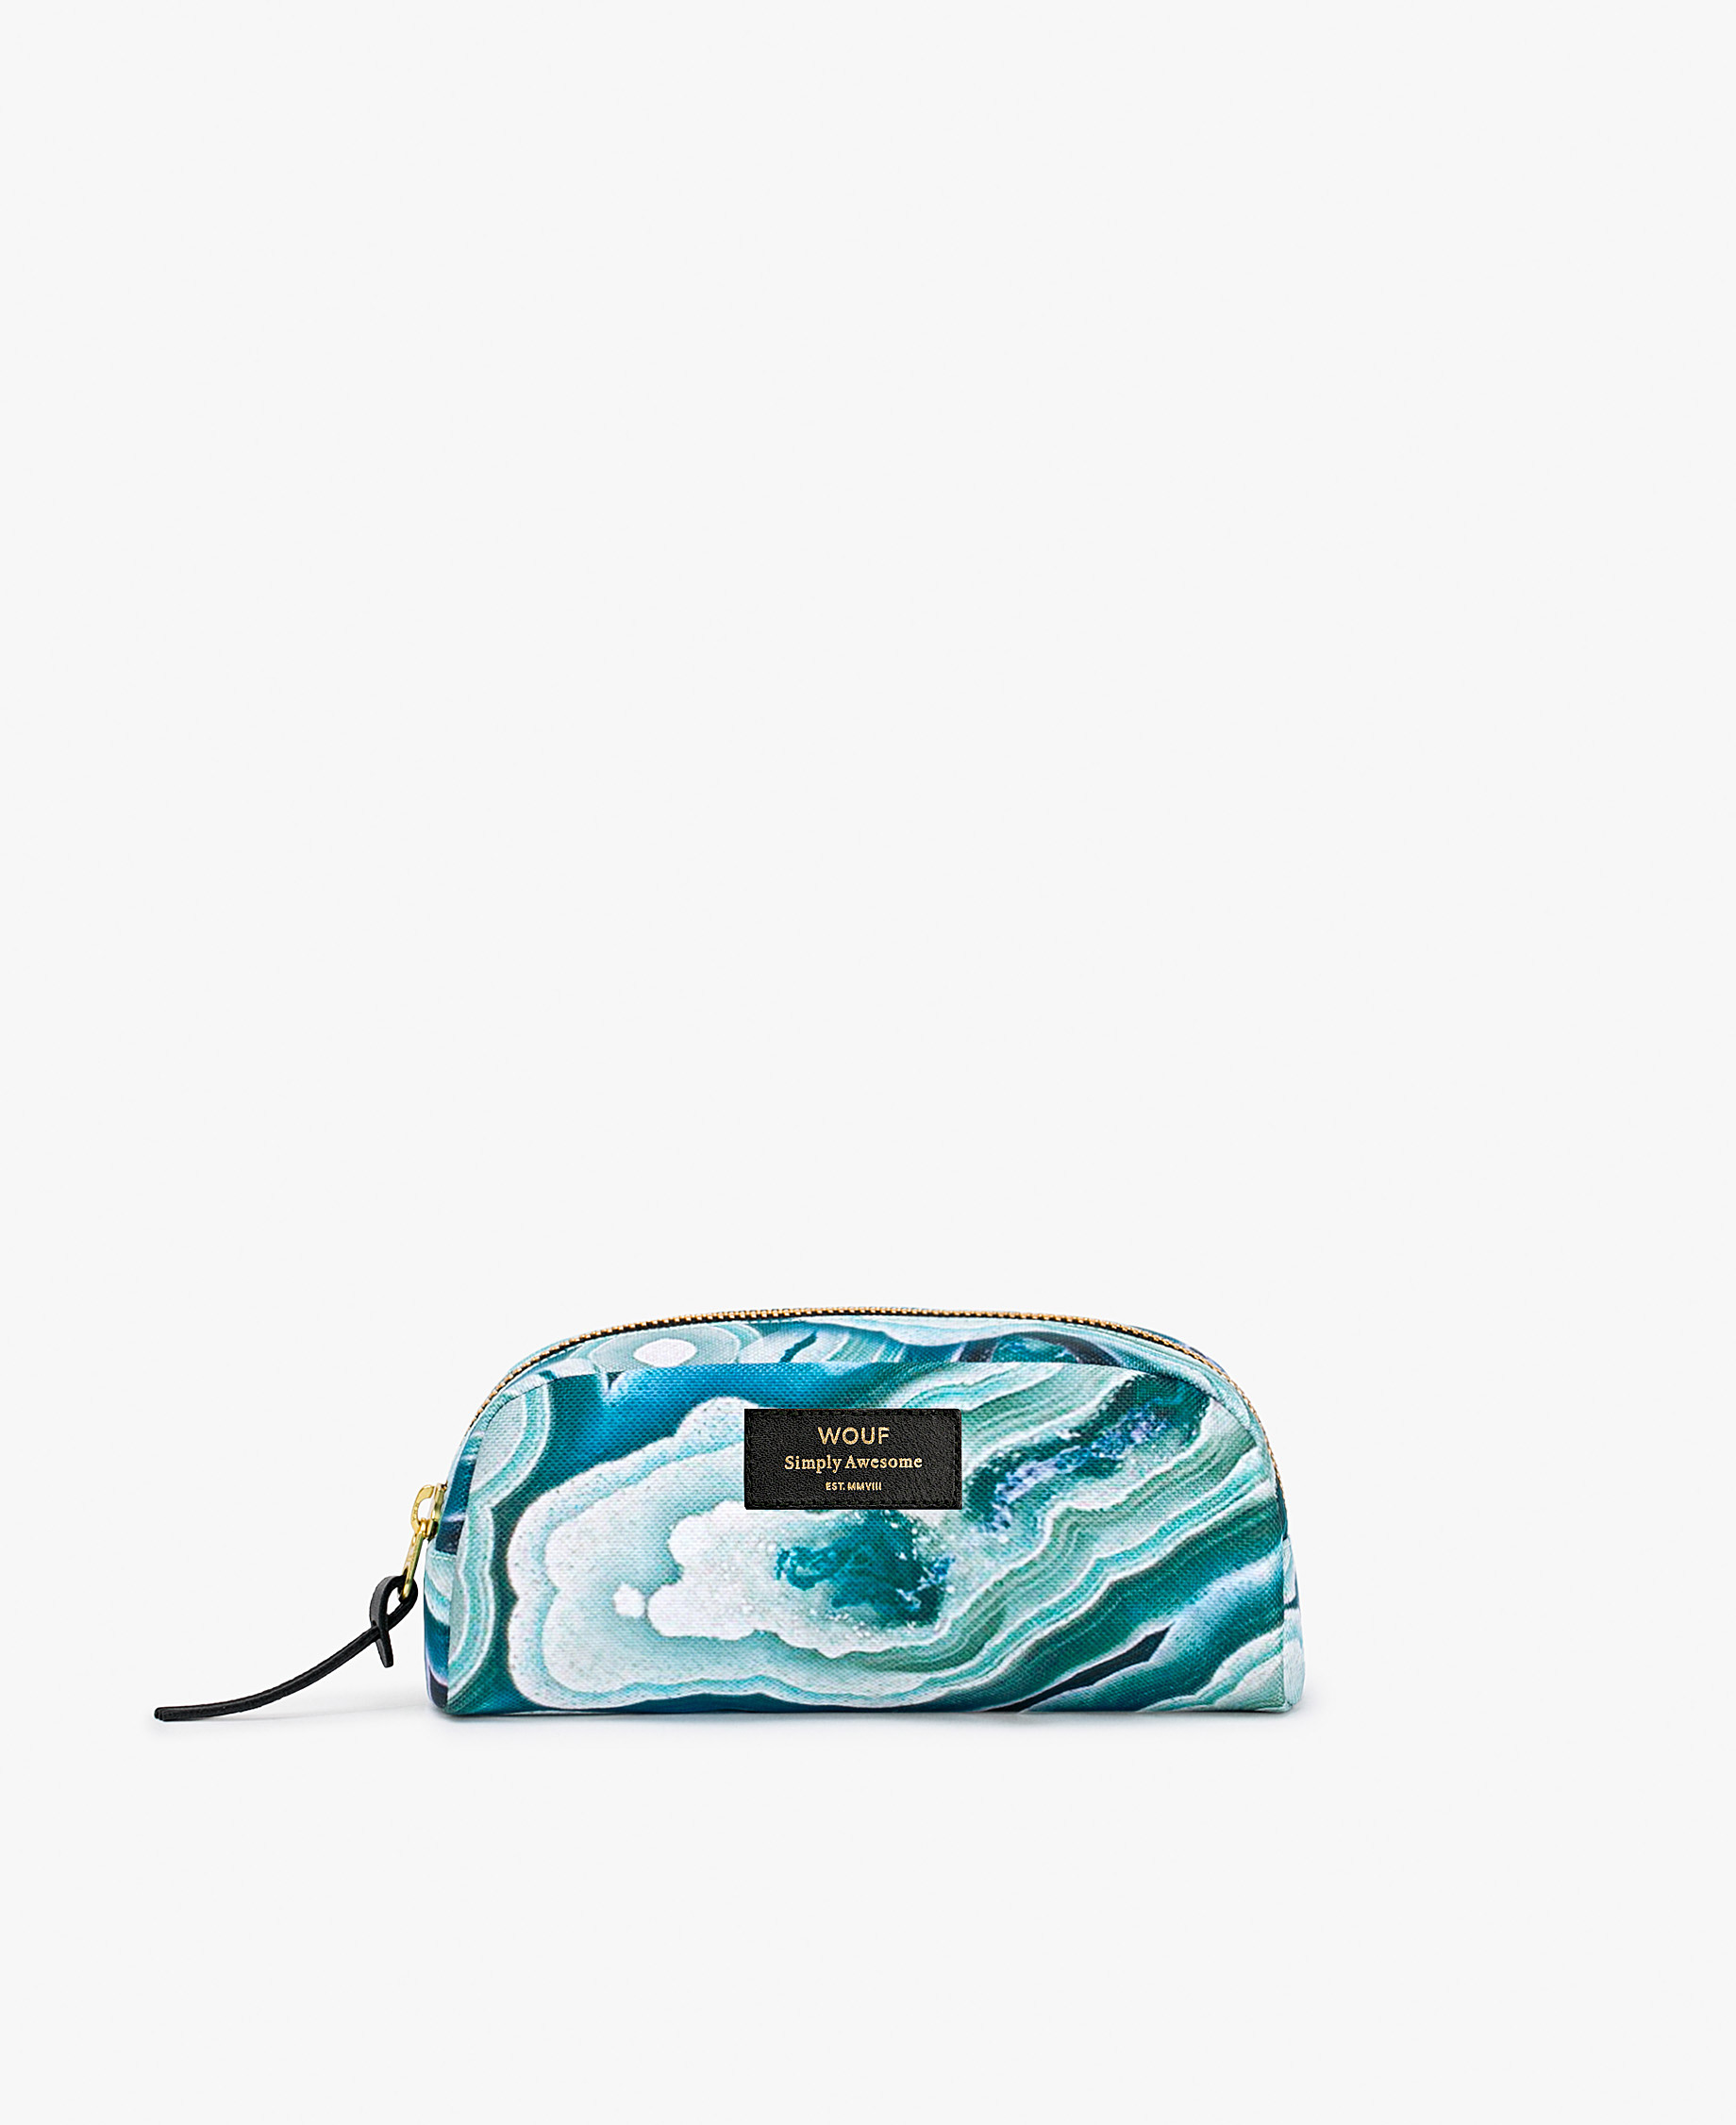 blue toilery bag for woman